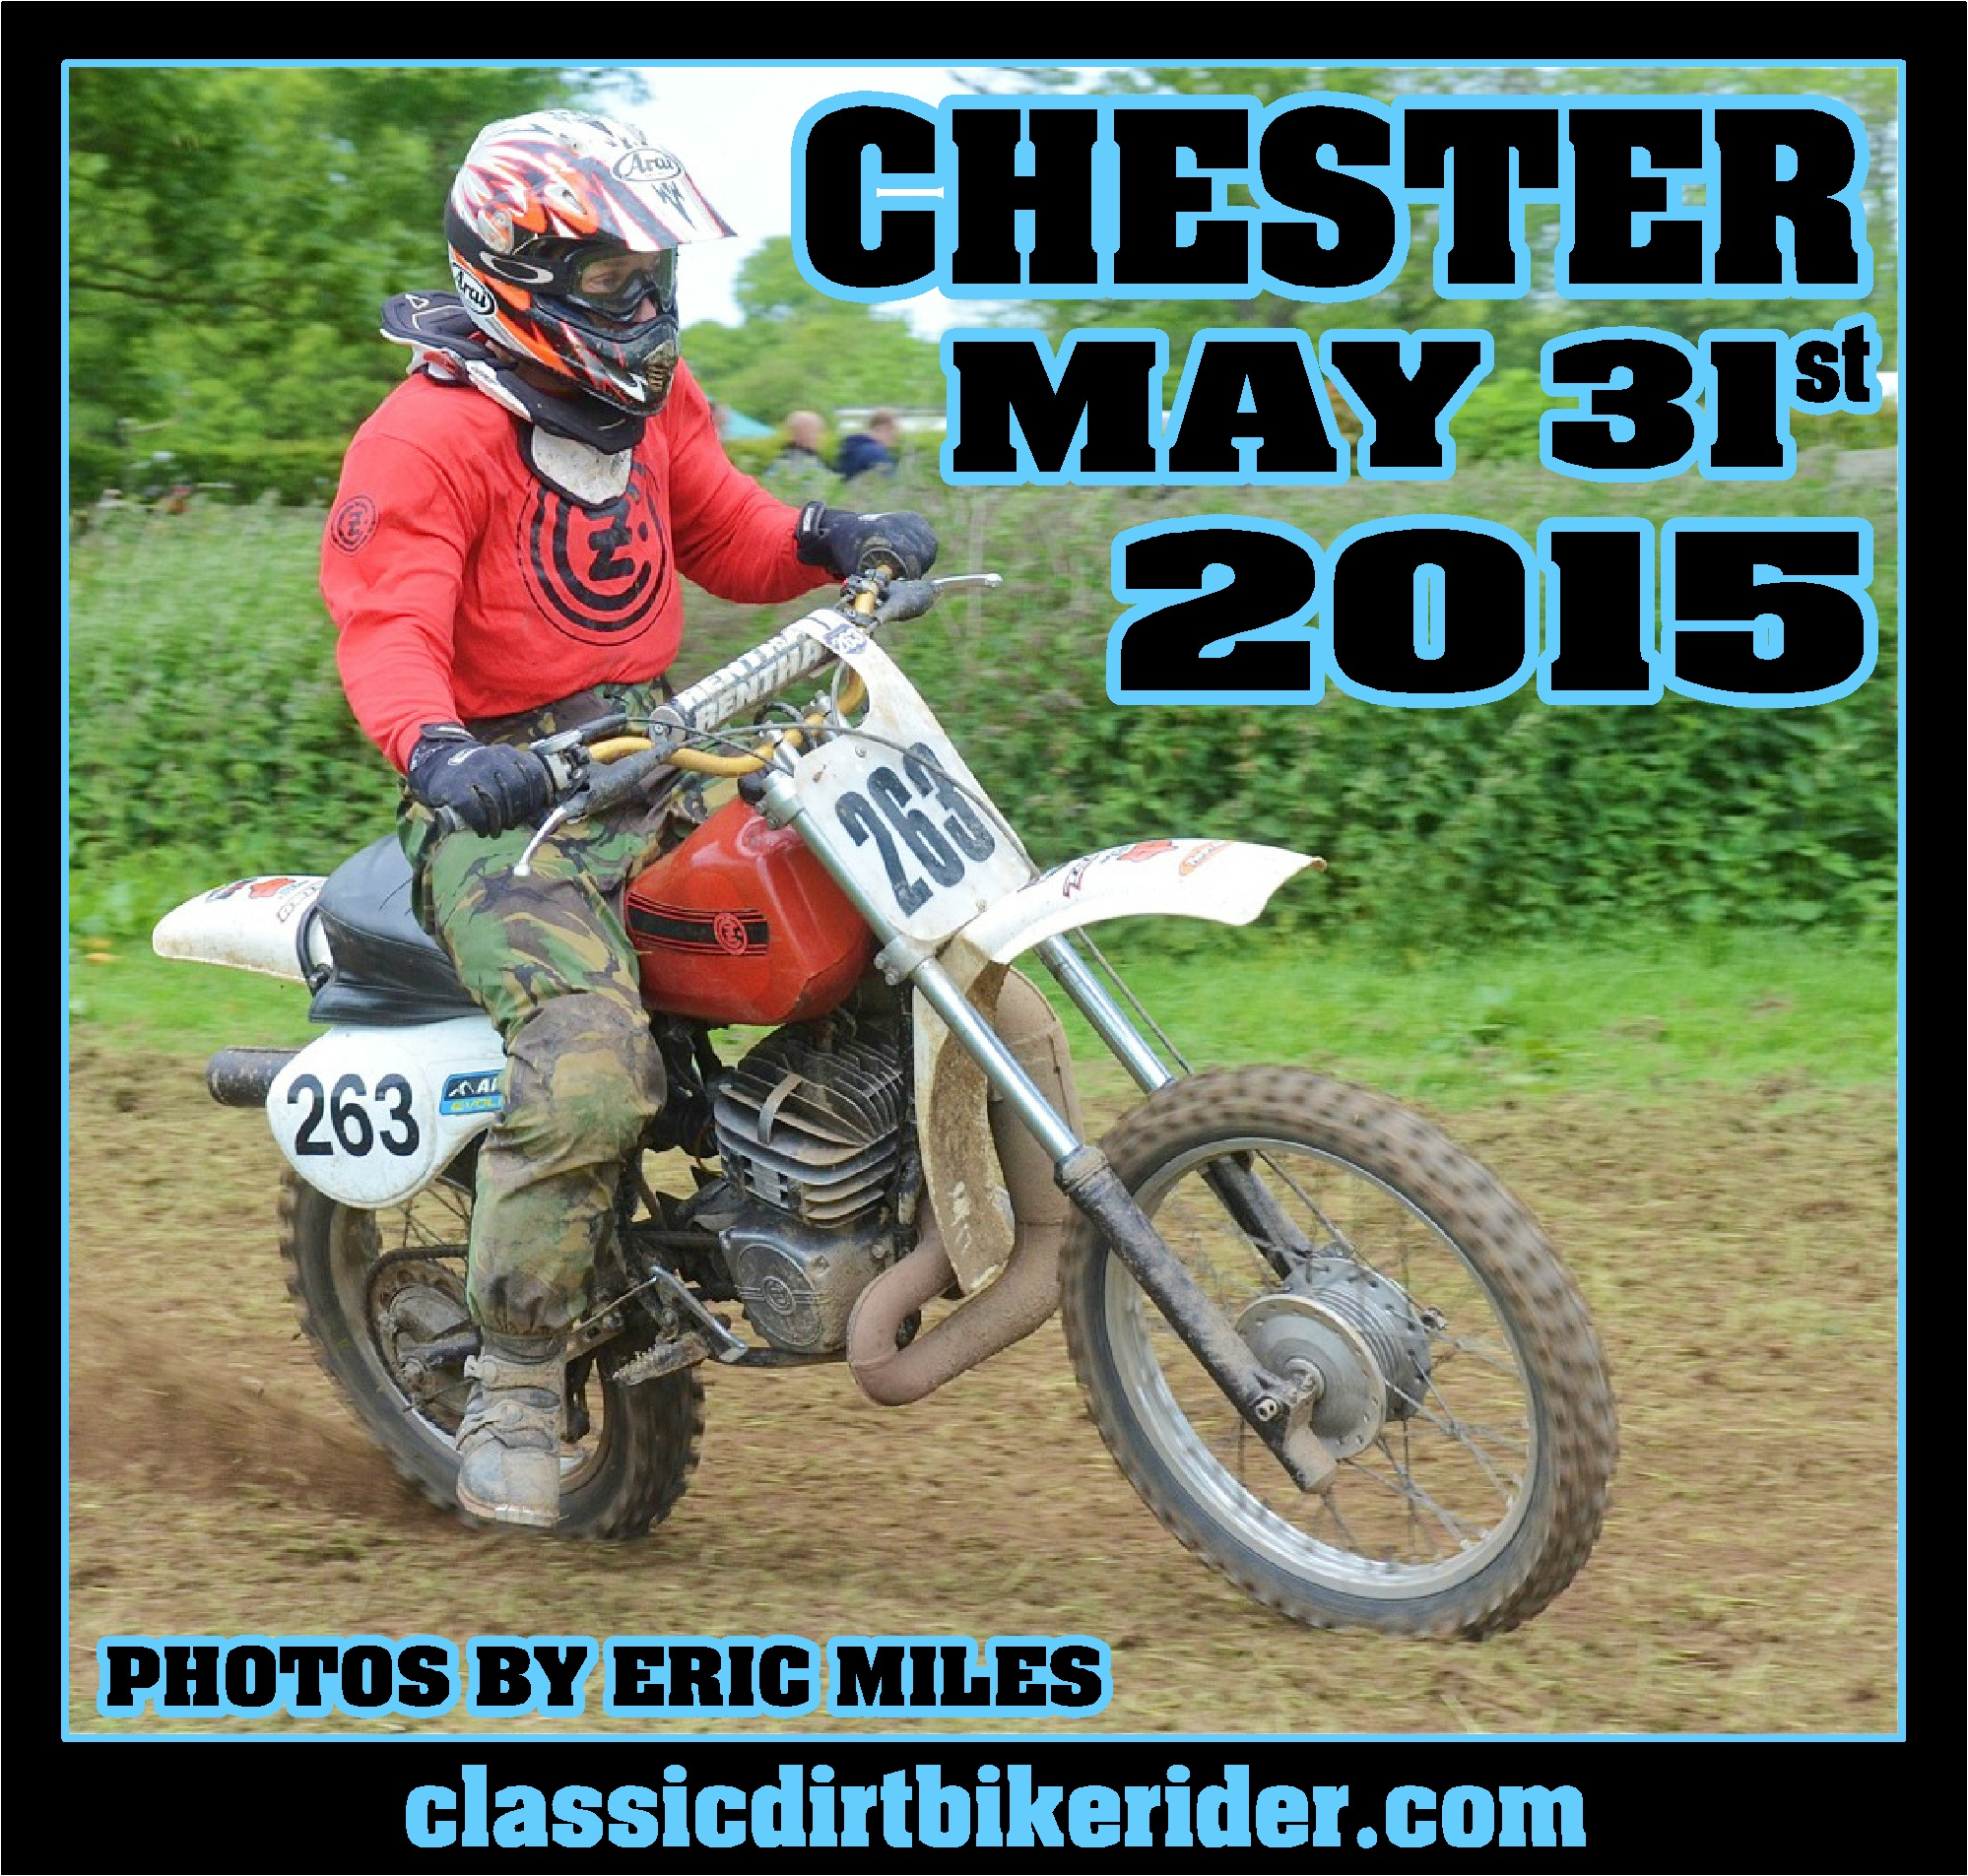 chester classic & twinshock scramble photos pictures May 31st 2015 classicdirtbikerider